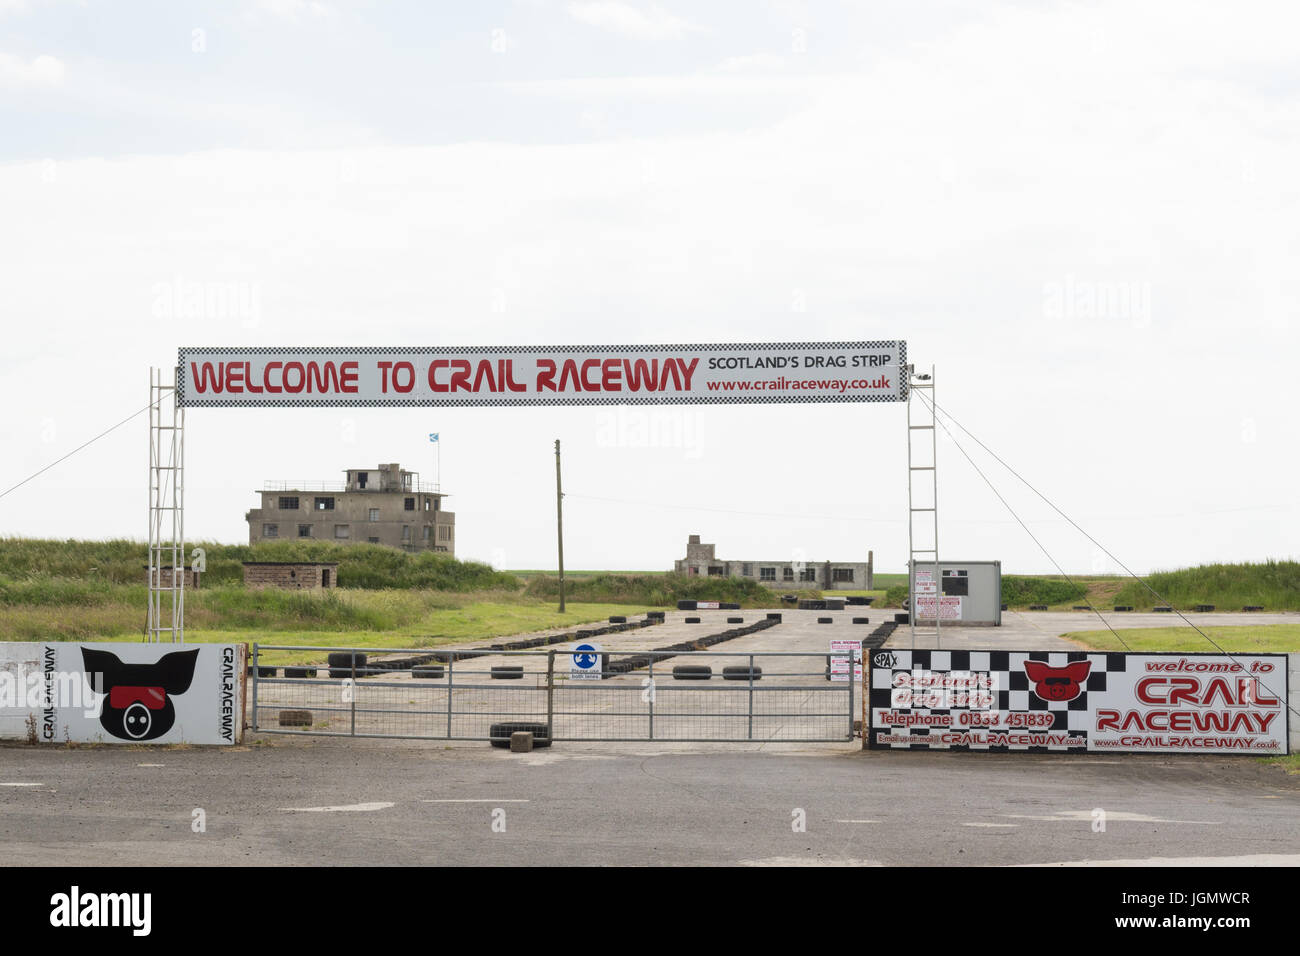 Crail raceway entrance on abandoned airfield WW1 WW2 Aerodrome HMS Jackdaw, Crail, East Neuk of Fife, Scotland, - Stock Image